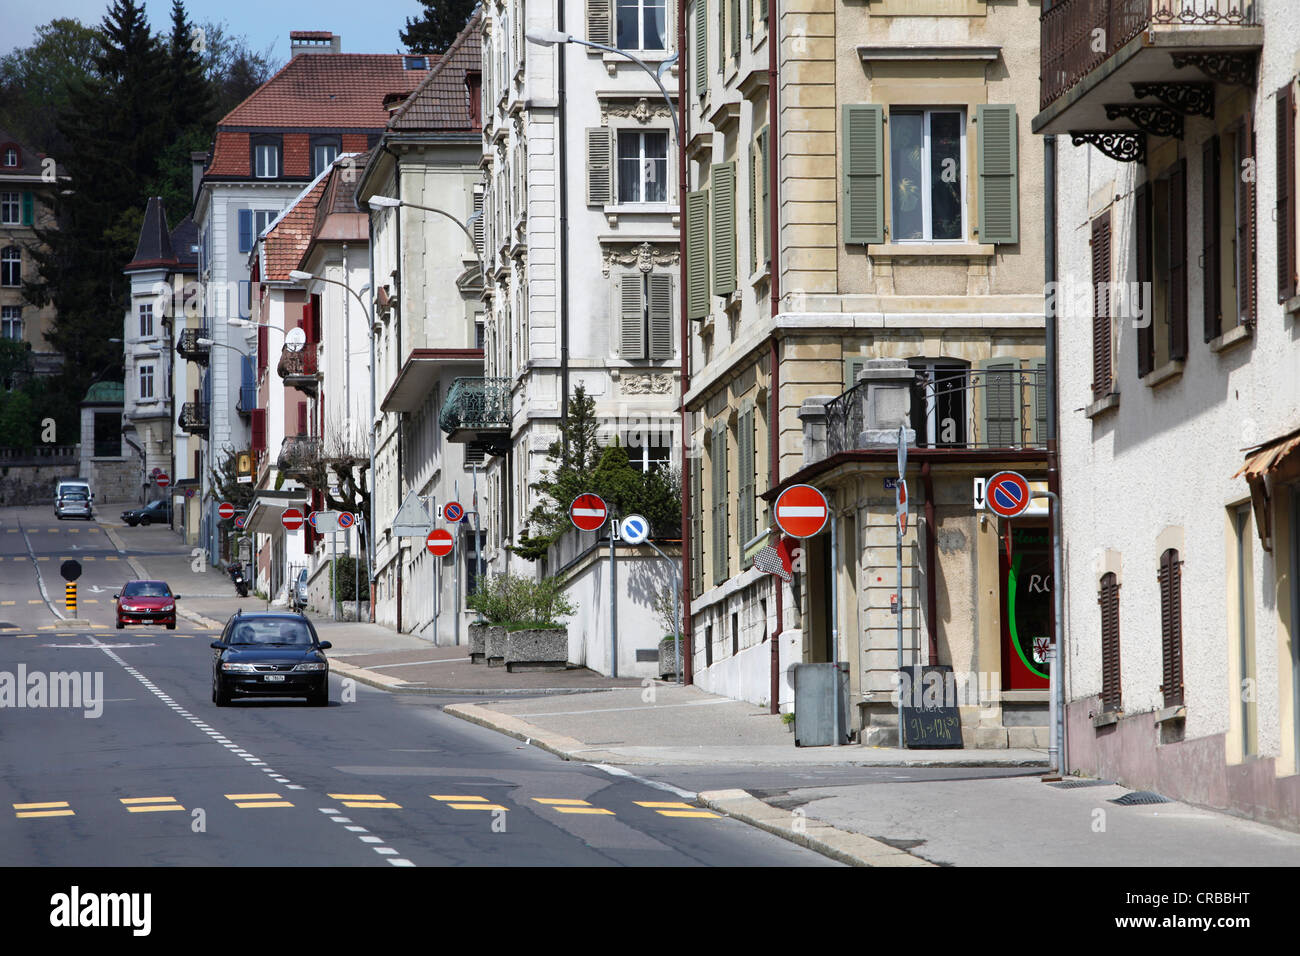 Street of the strictly geometrically designed city of La Chaux-de-Fonds, Canton Neuchatel, Switzerland, Europe - Stock Image